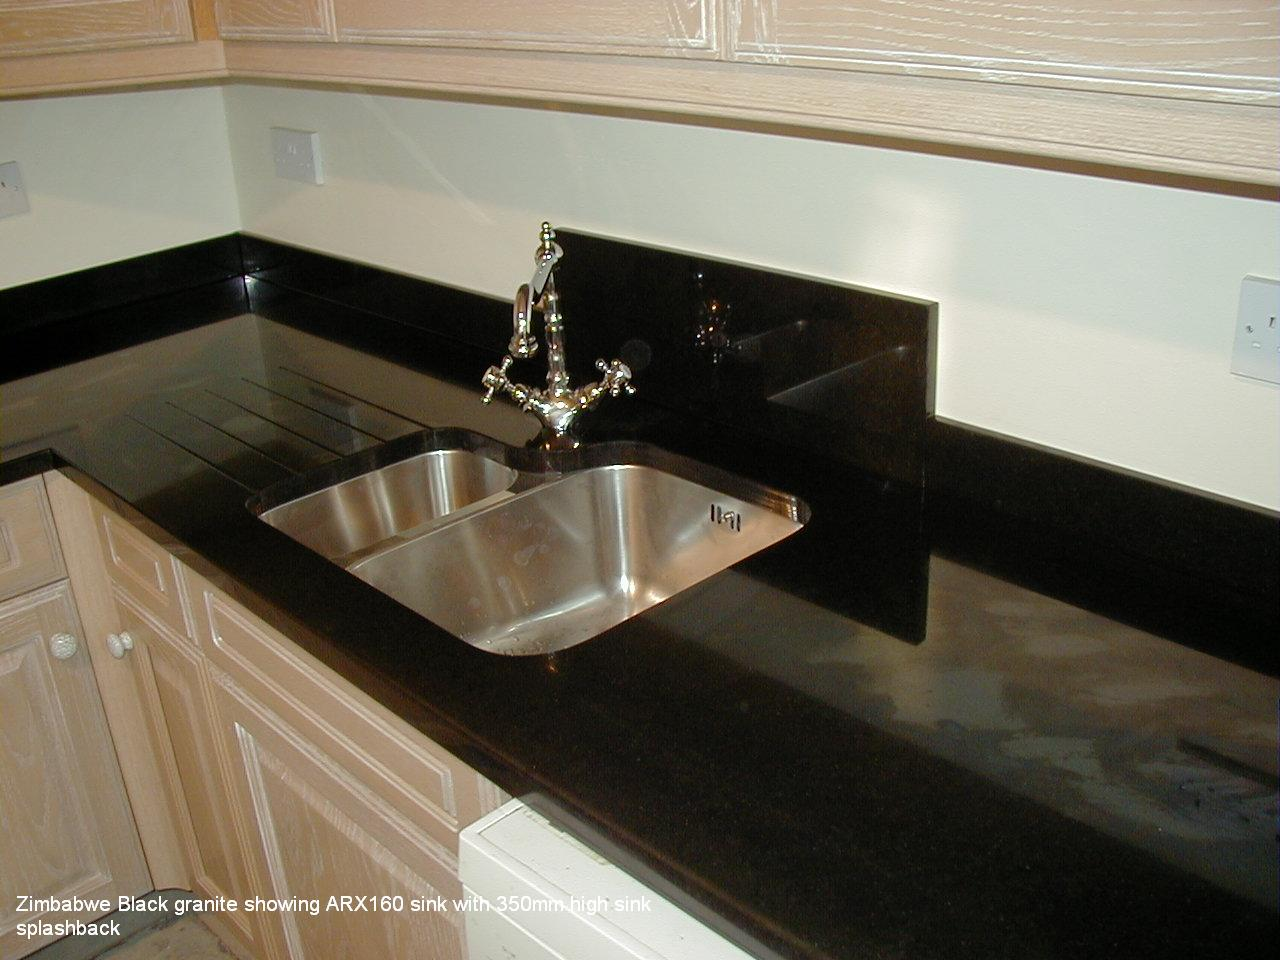 Zimbabwe black granite showing arx160 sink with 350mm high for Kitchen cabinets zimbabwe